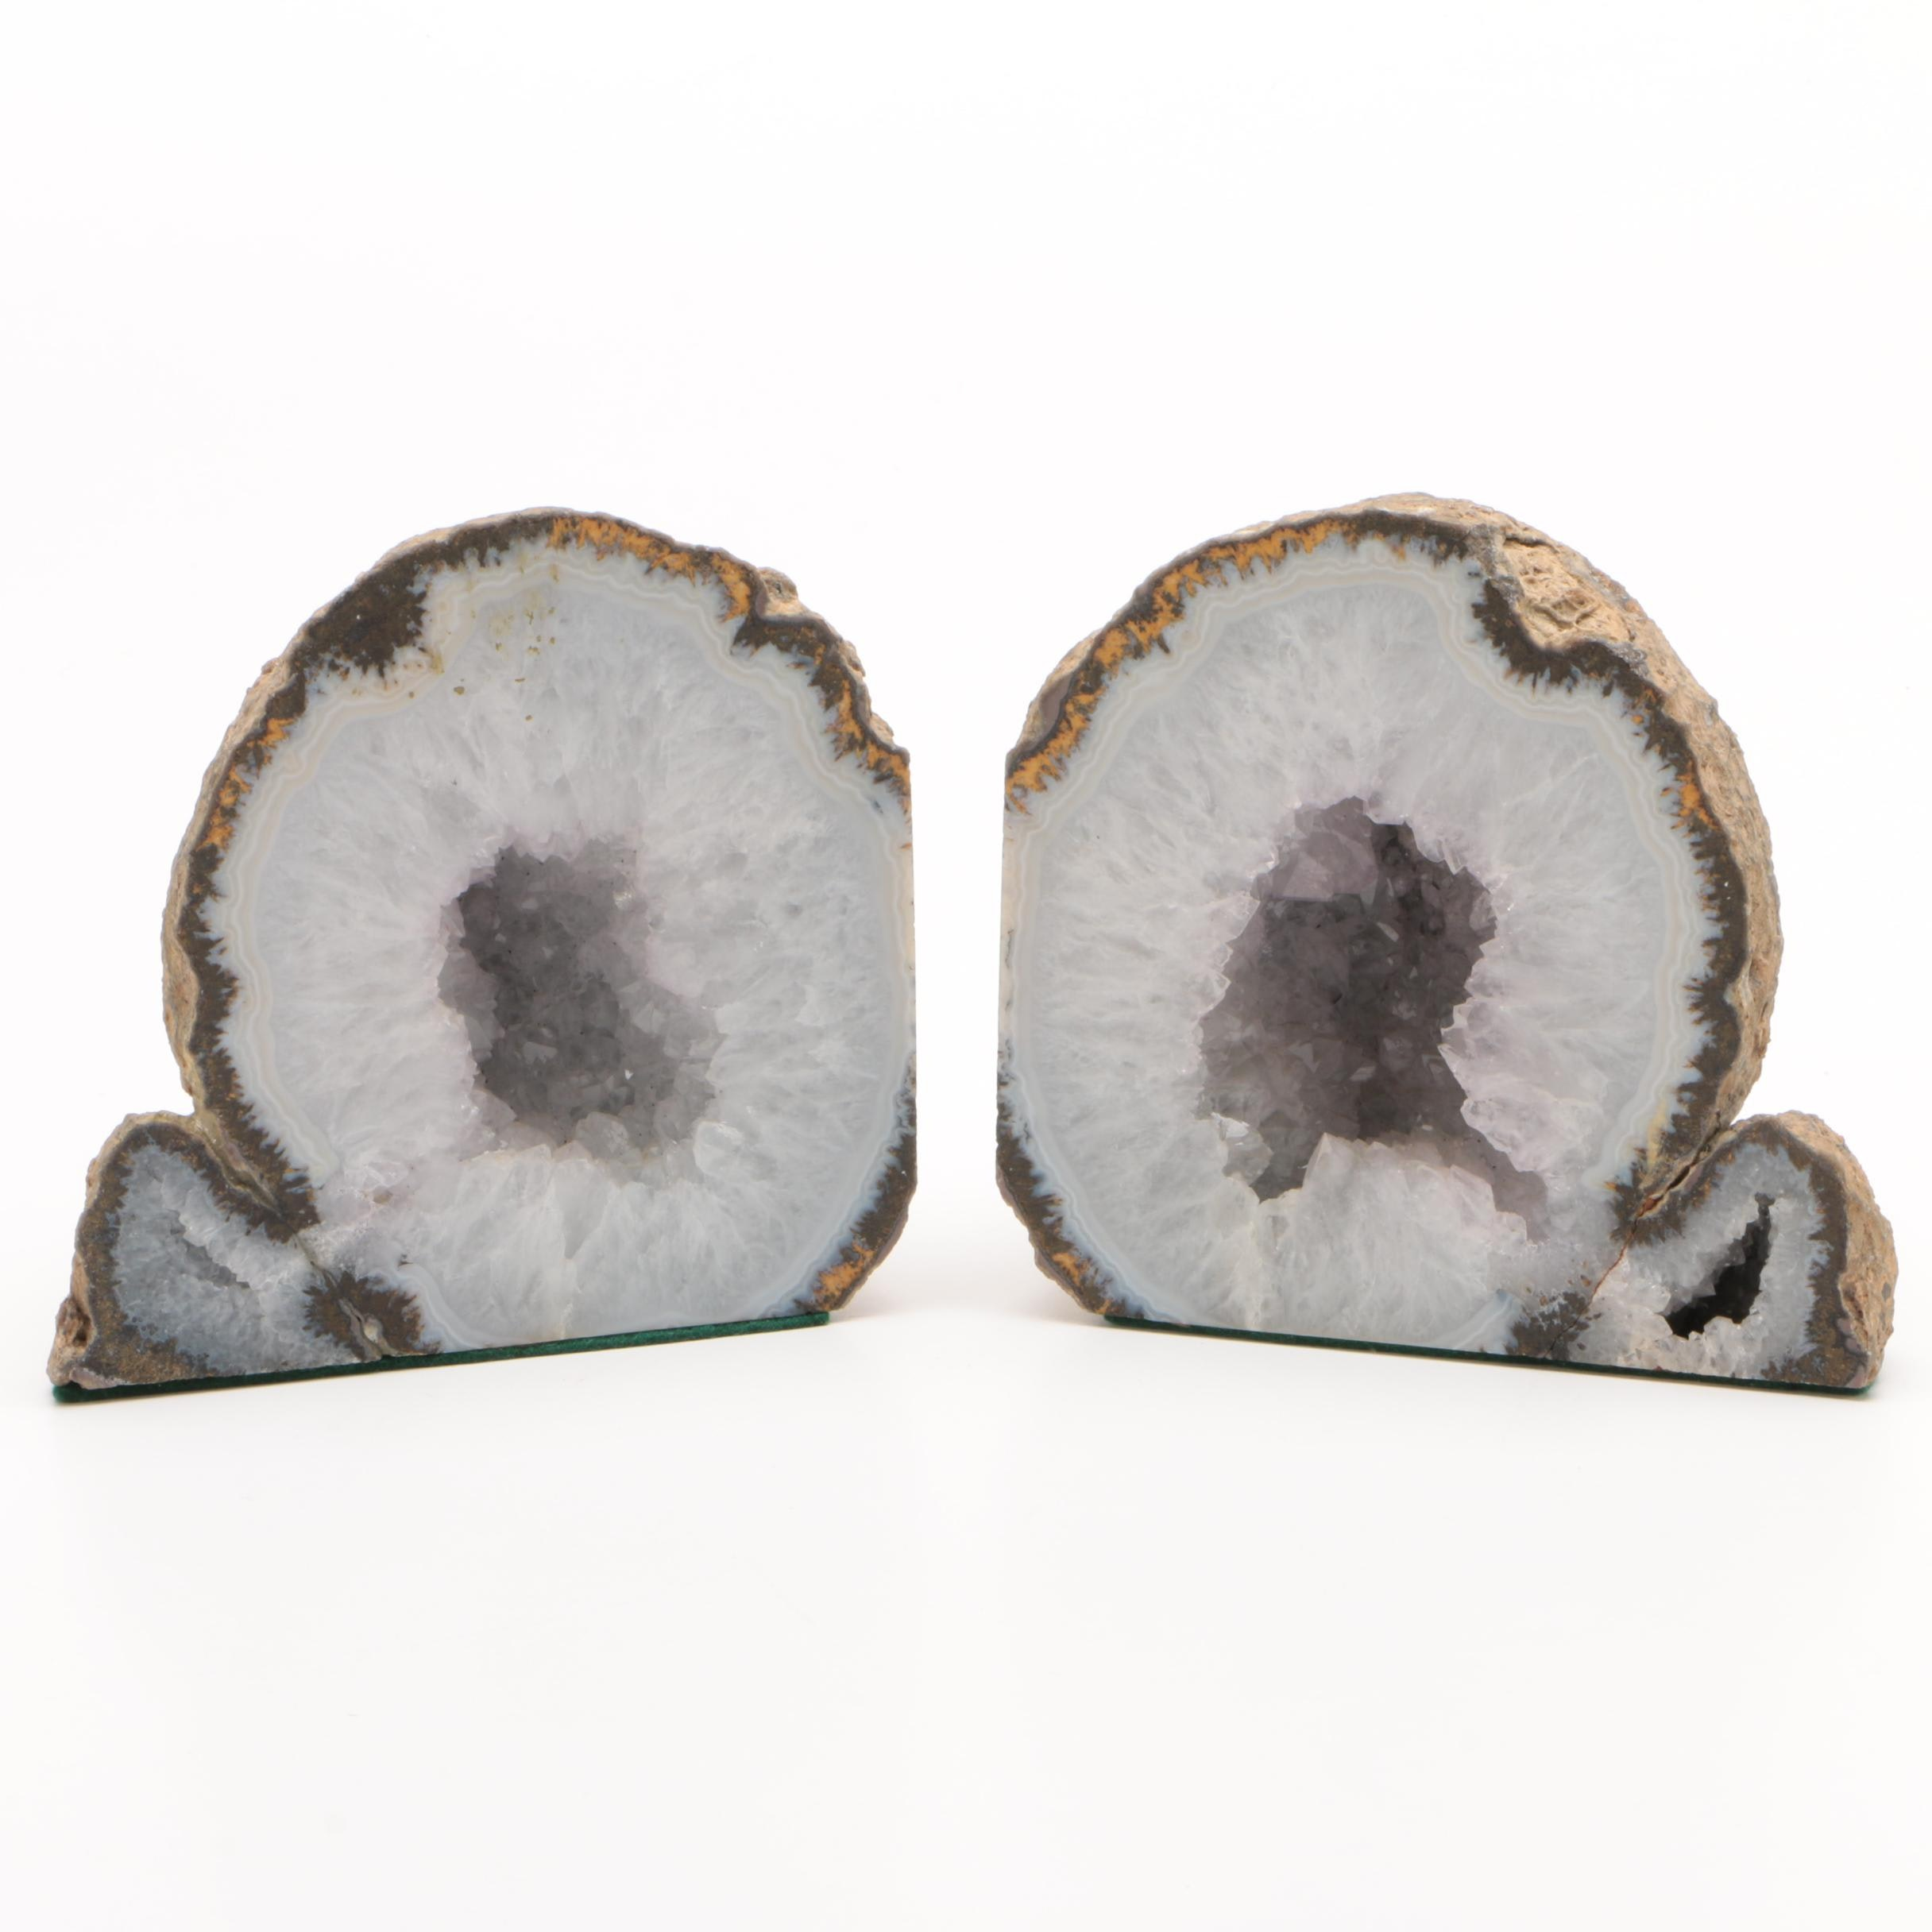 Pair of Polish Agate Geode Bookends